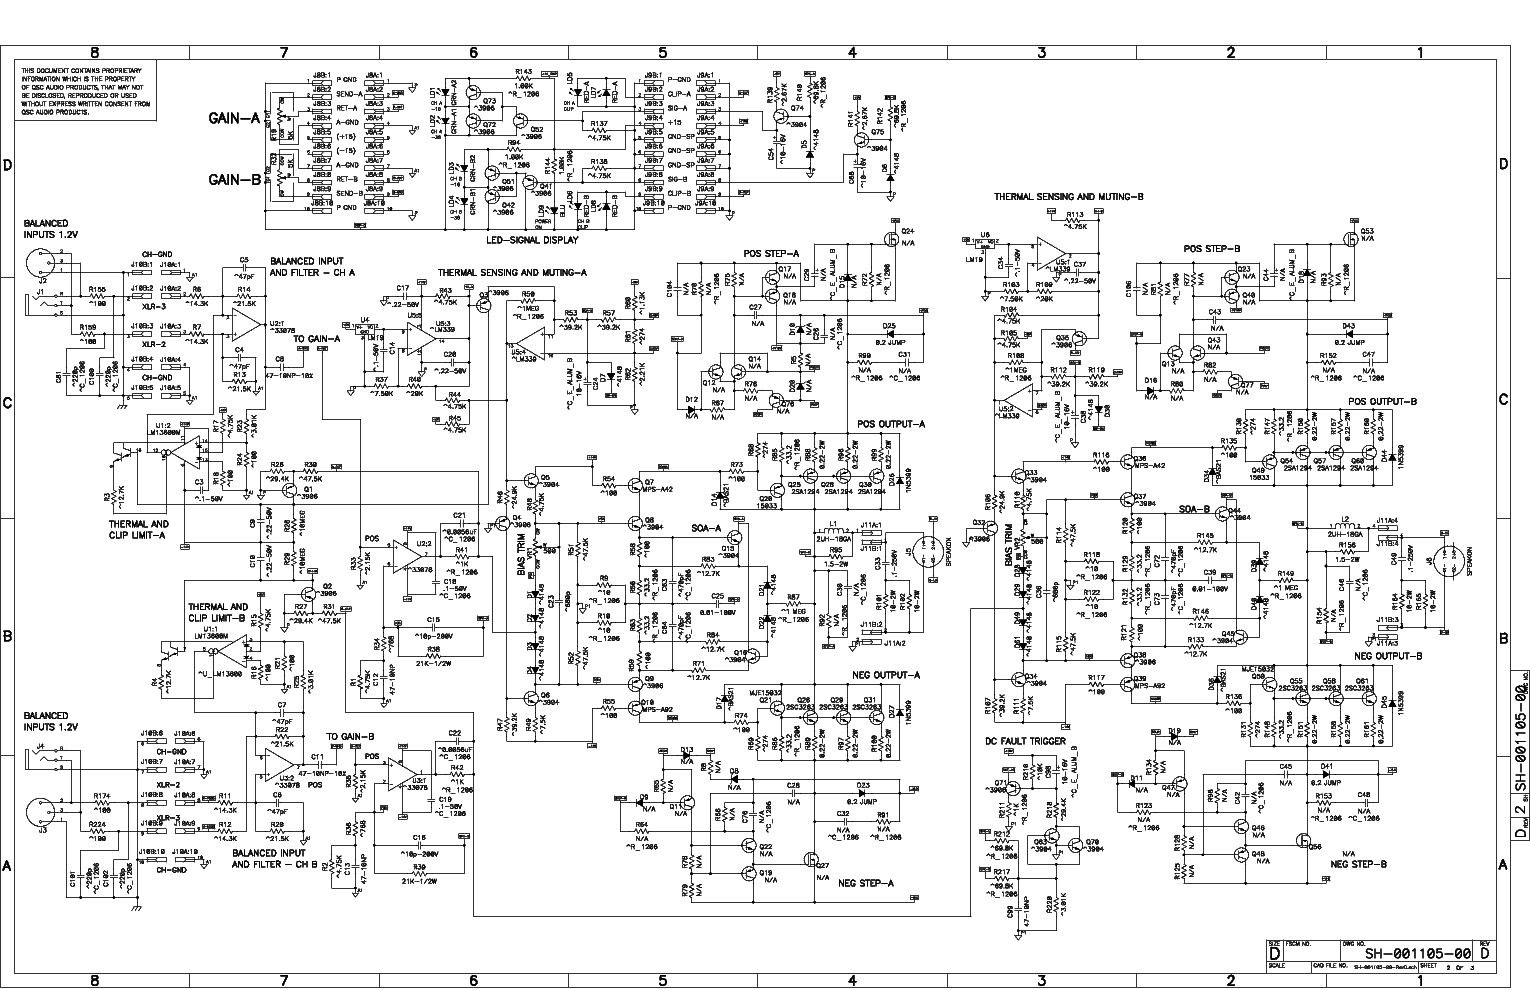 isa 300ti, pl340 power supply, gx 3 amplifier, k-12 ksub, 1400 power amp, k10 speaker, usa 900 amplifier, on qsc plx schematic diagram